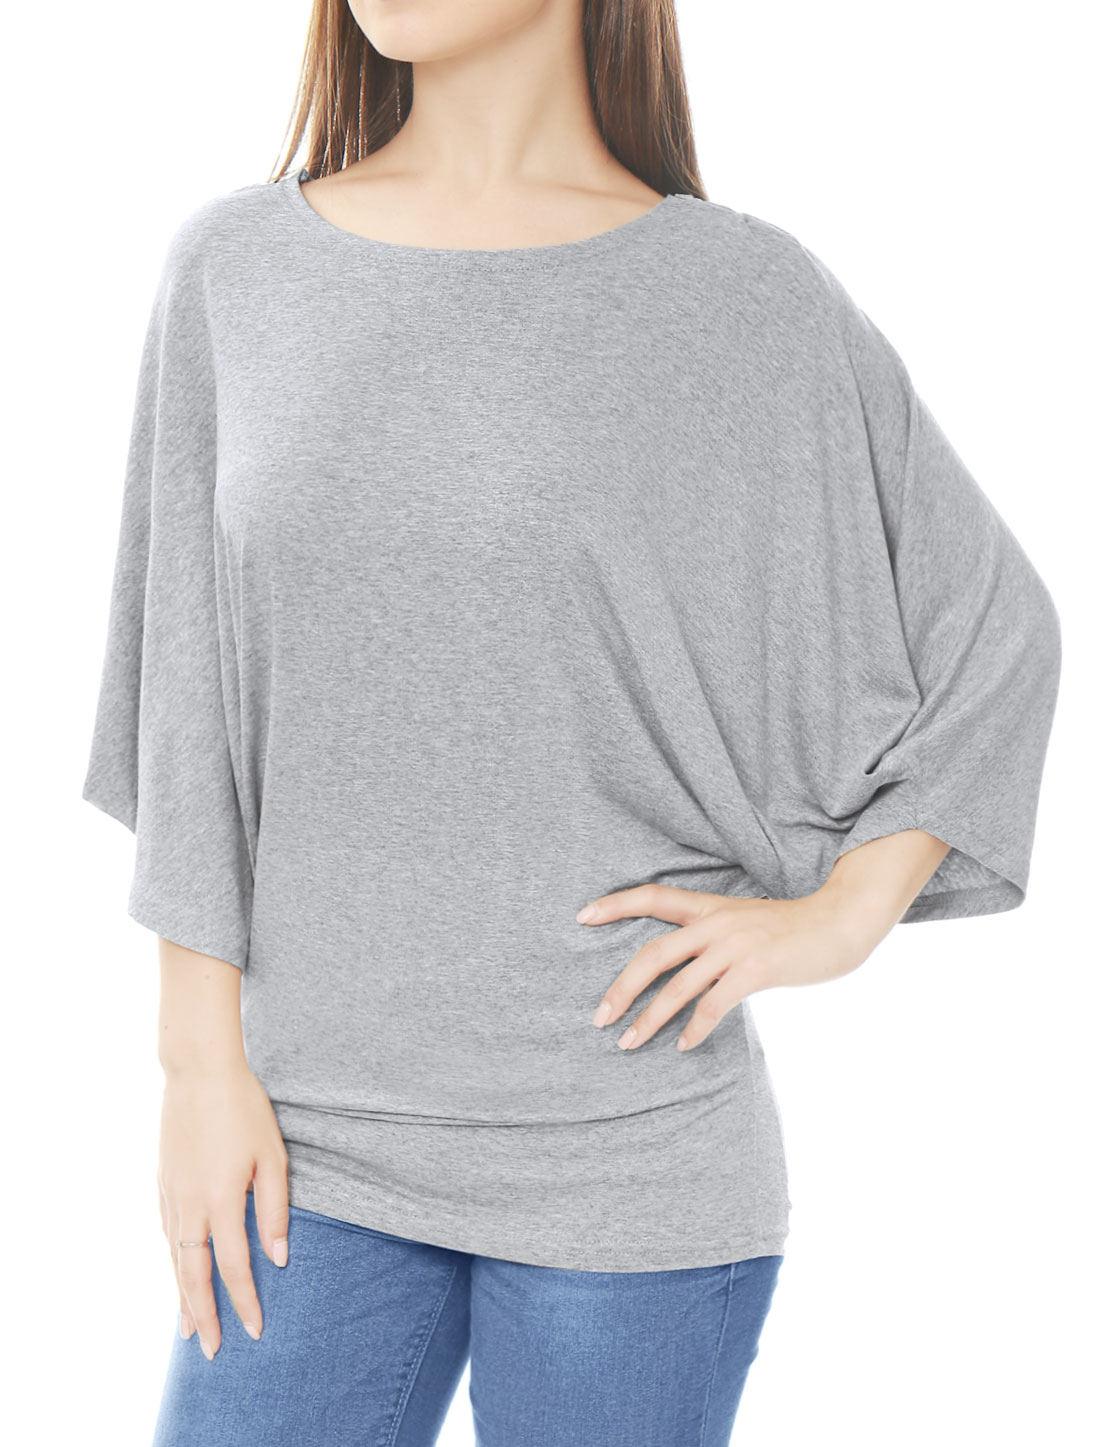 Women Boat Neck Batwing Sleeves Oversized Tunic Top Gray L